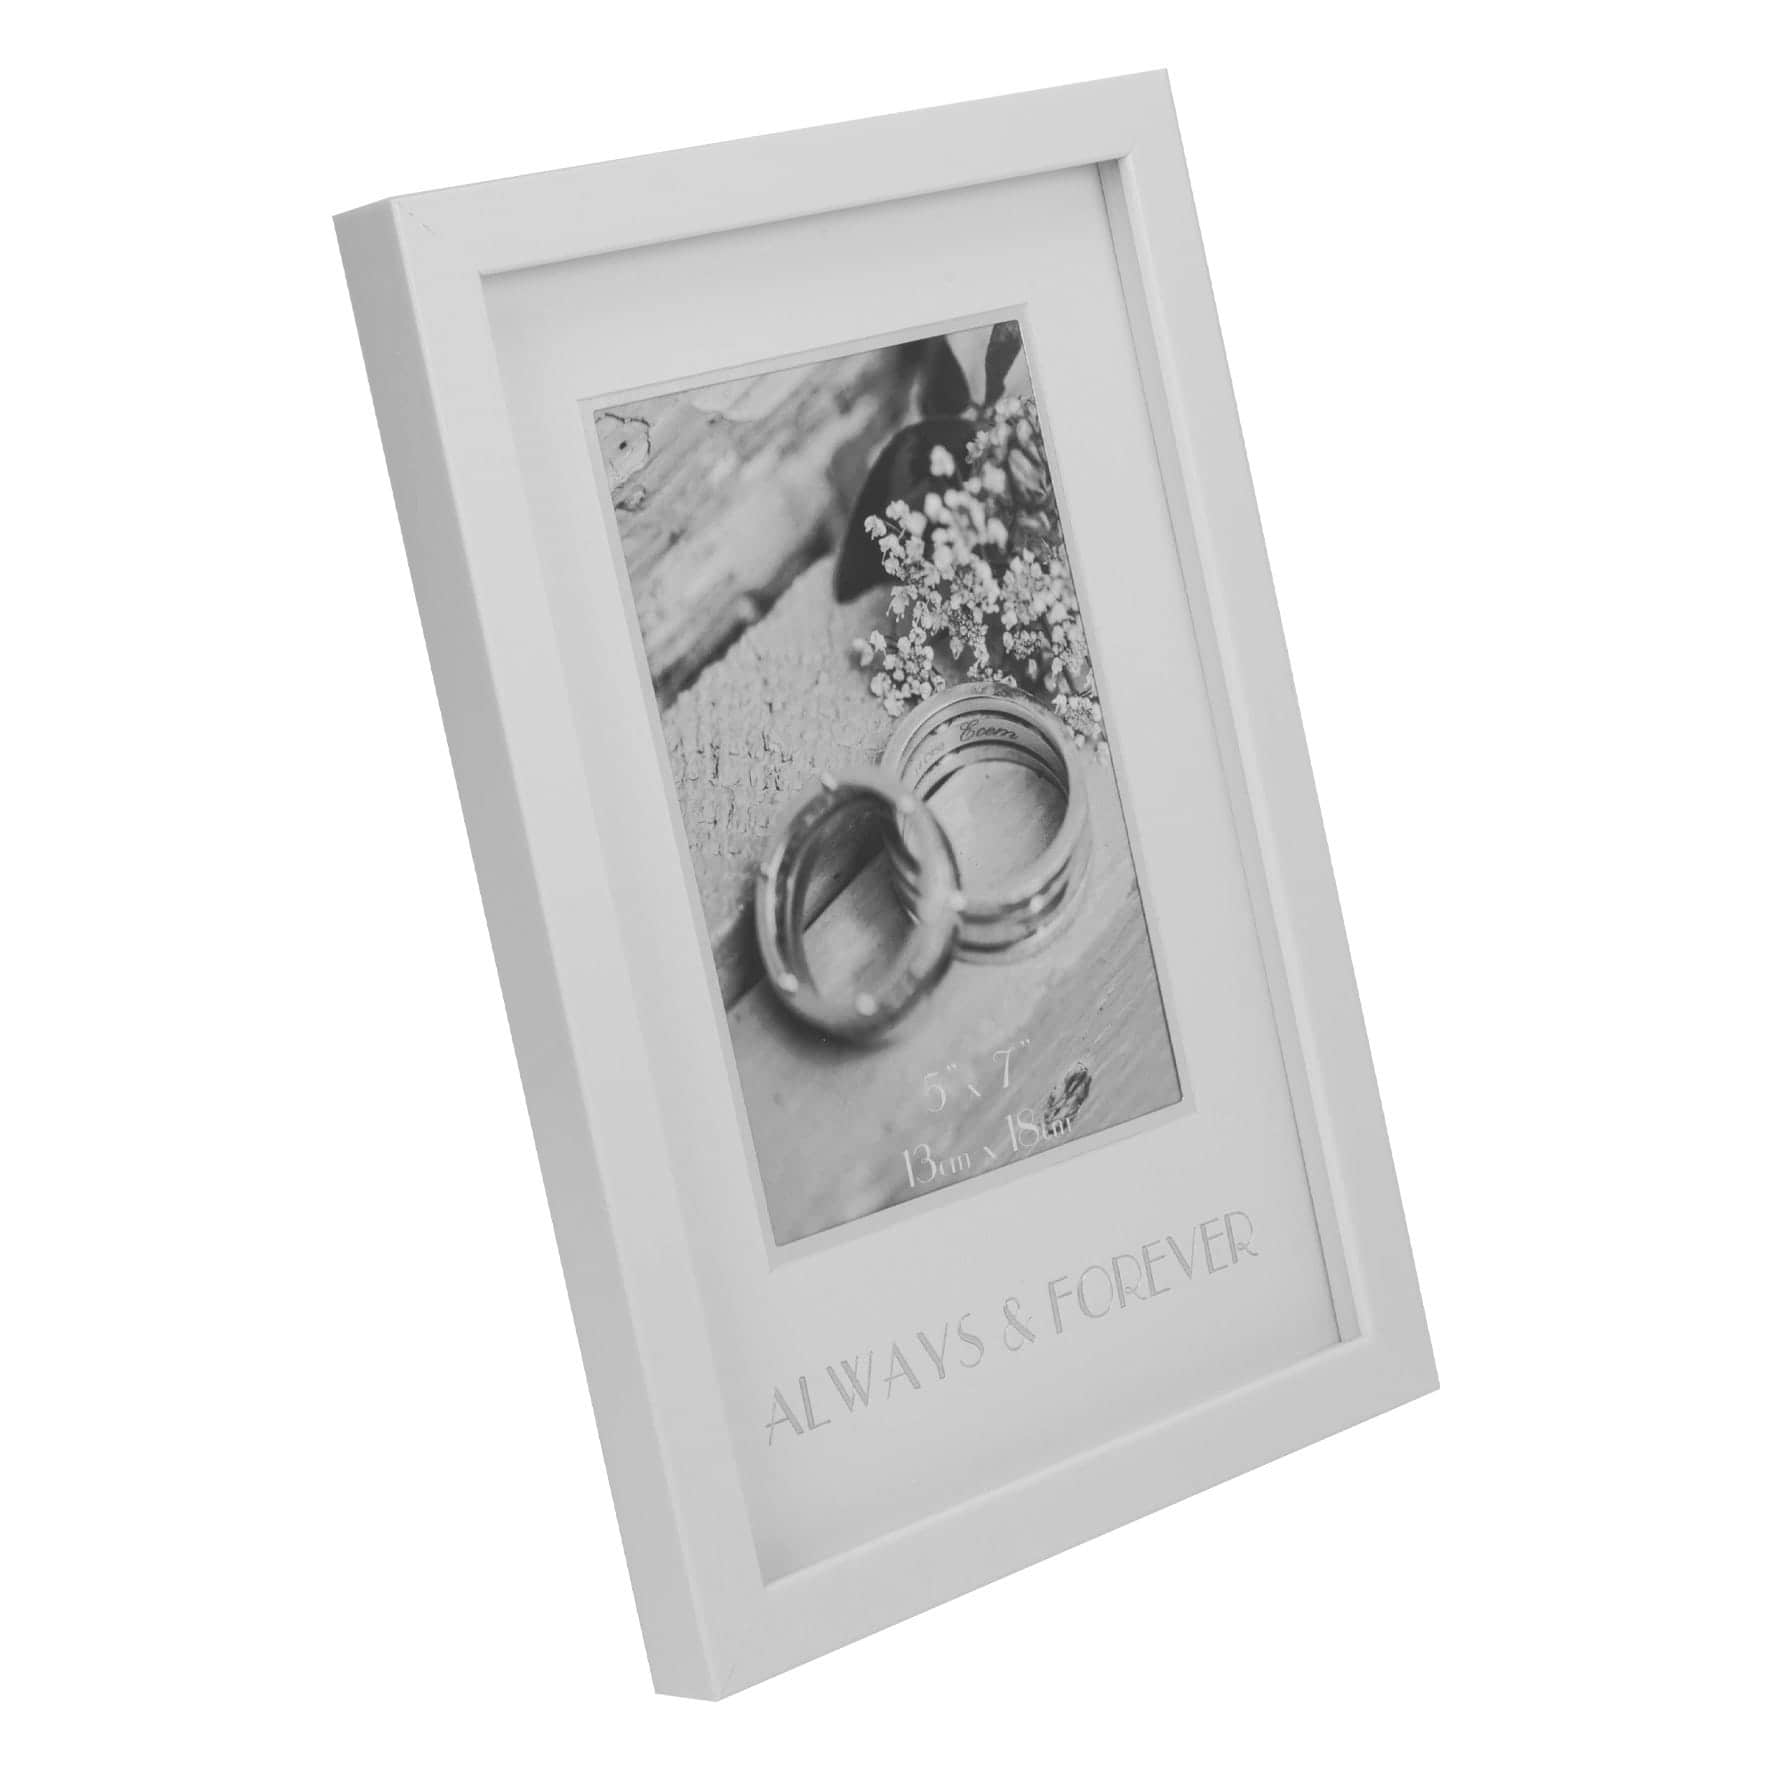 Fifth wedding anniversary; Clintons photoframe in off-white colour.